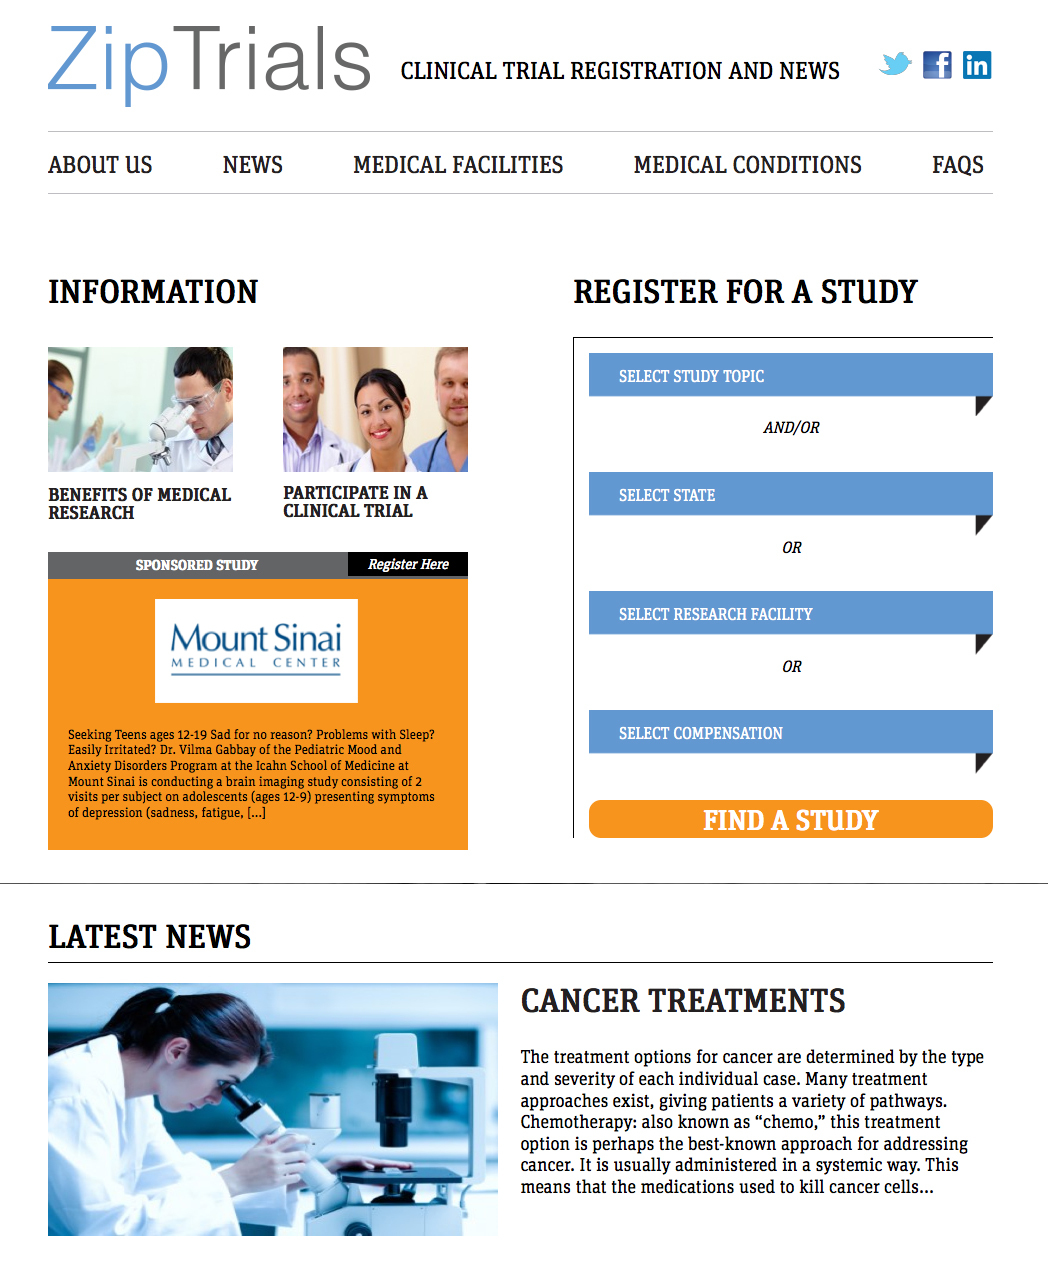 Metro US re-launches ZipTrials, the leading site for clinical trial registration and medical research news (Photo: Business Wire)